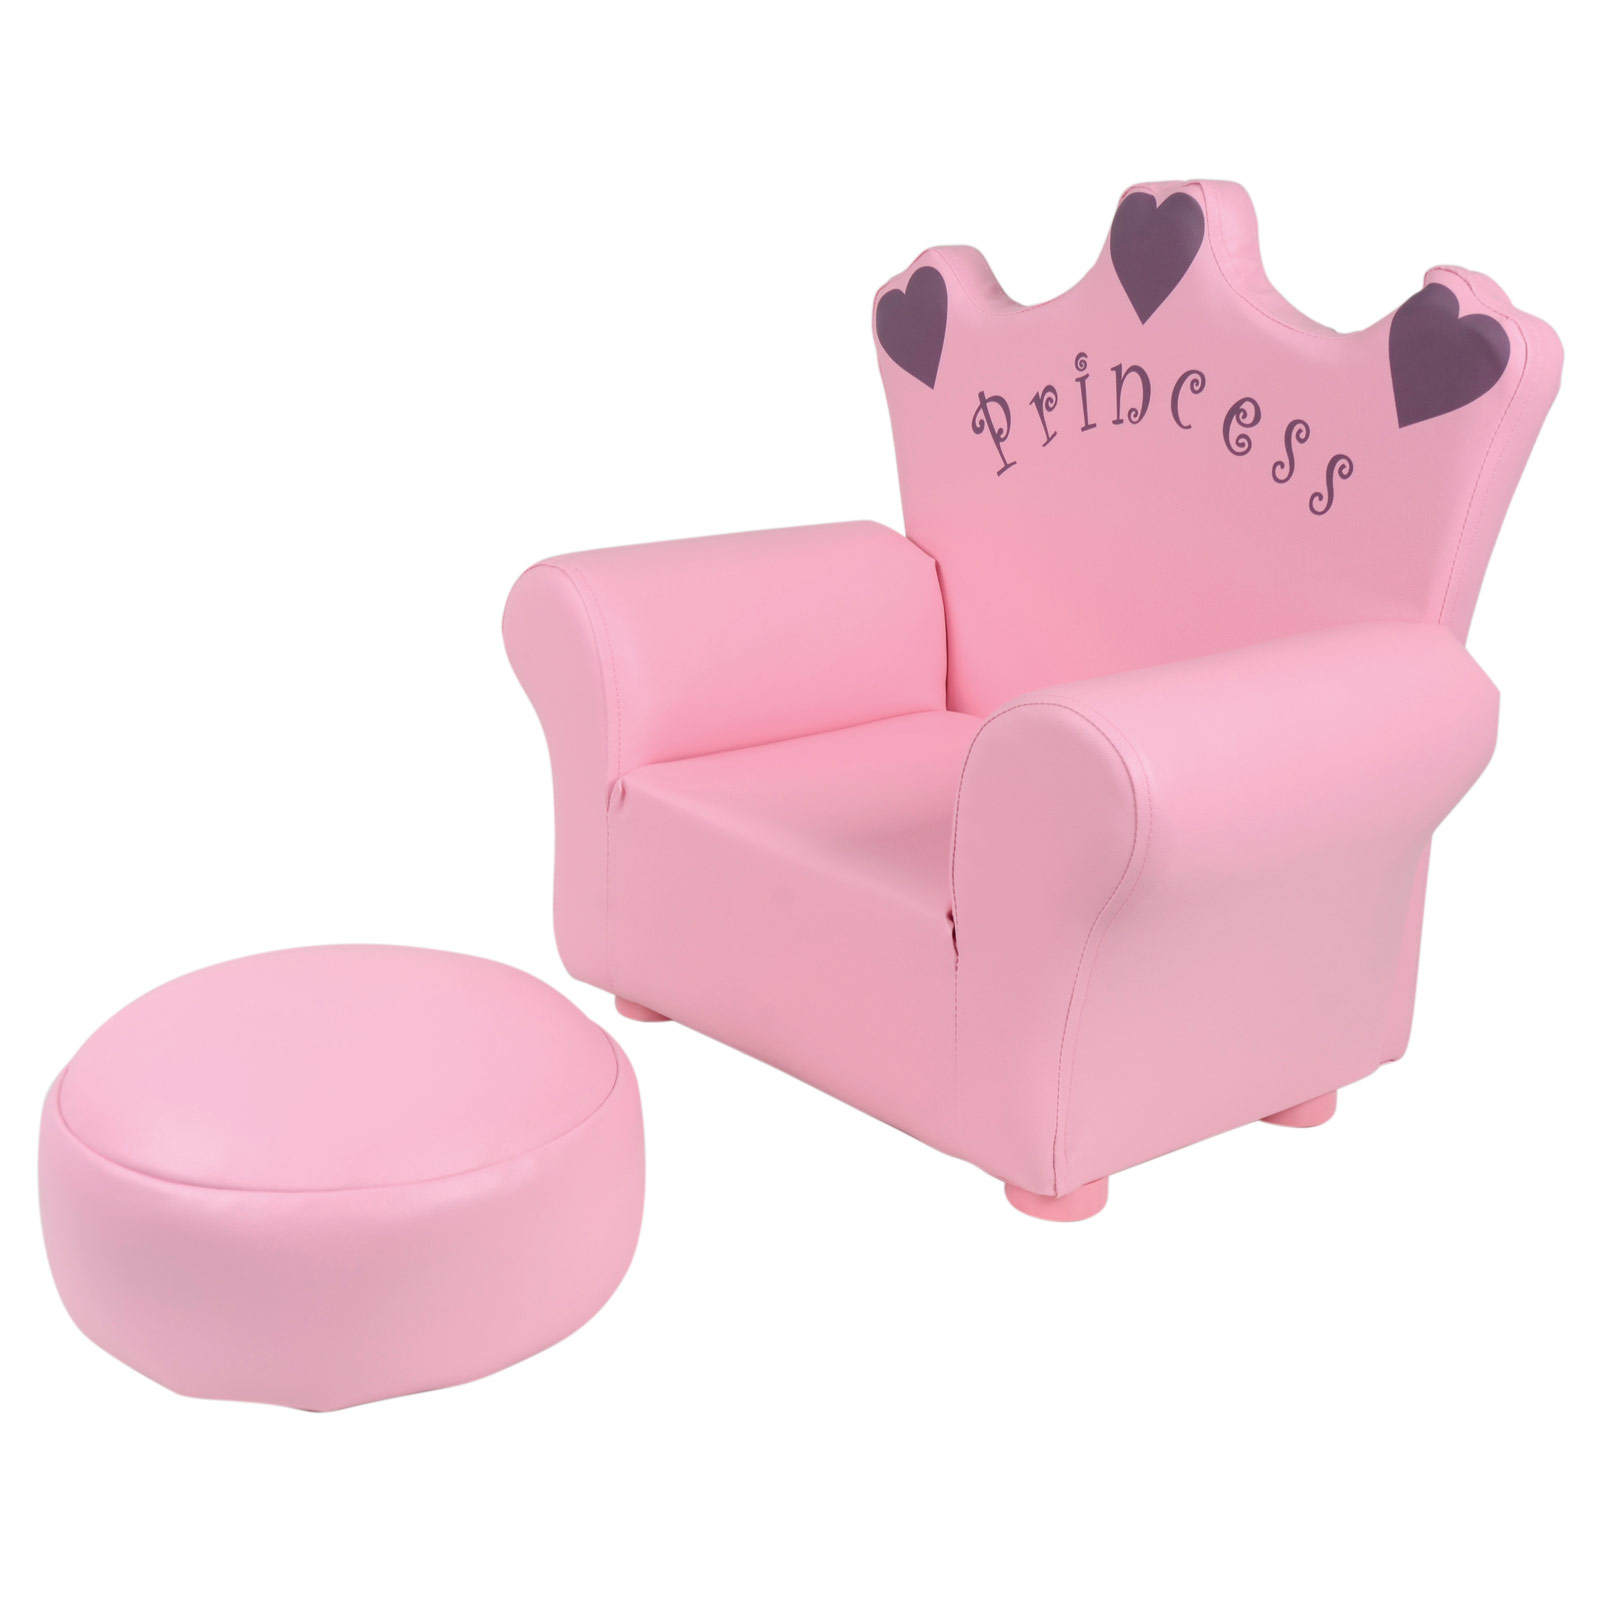 Kids pu leather look armchair sofa chair footstool for Pink kids chair